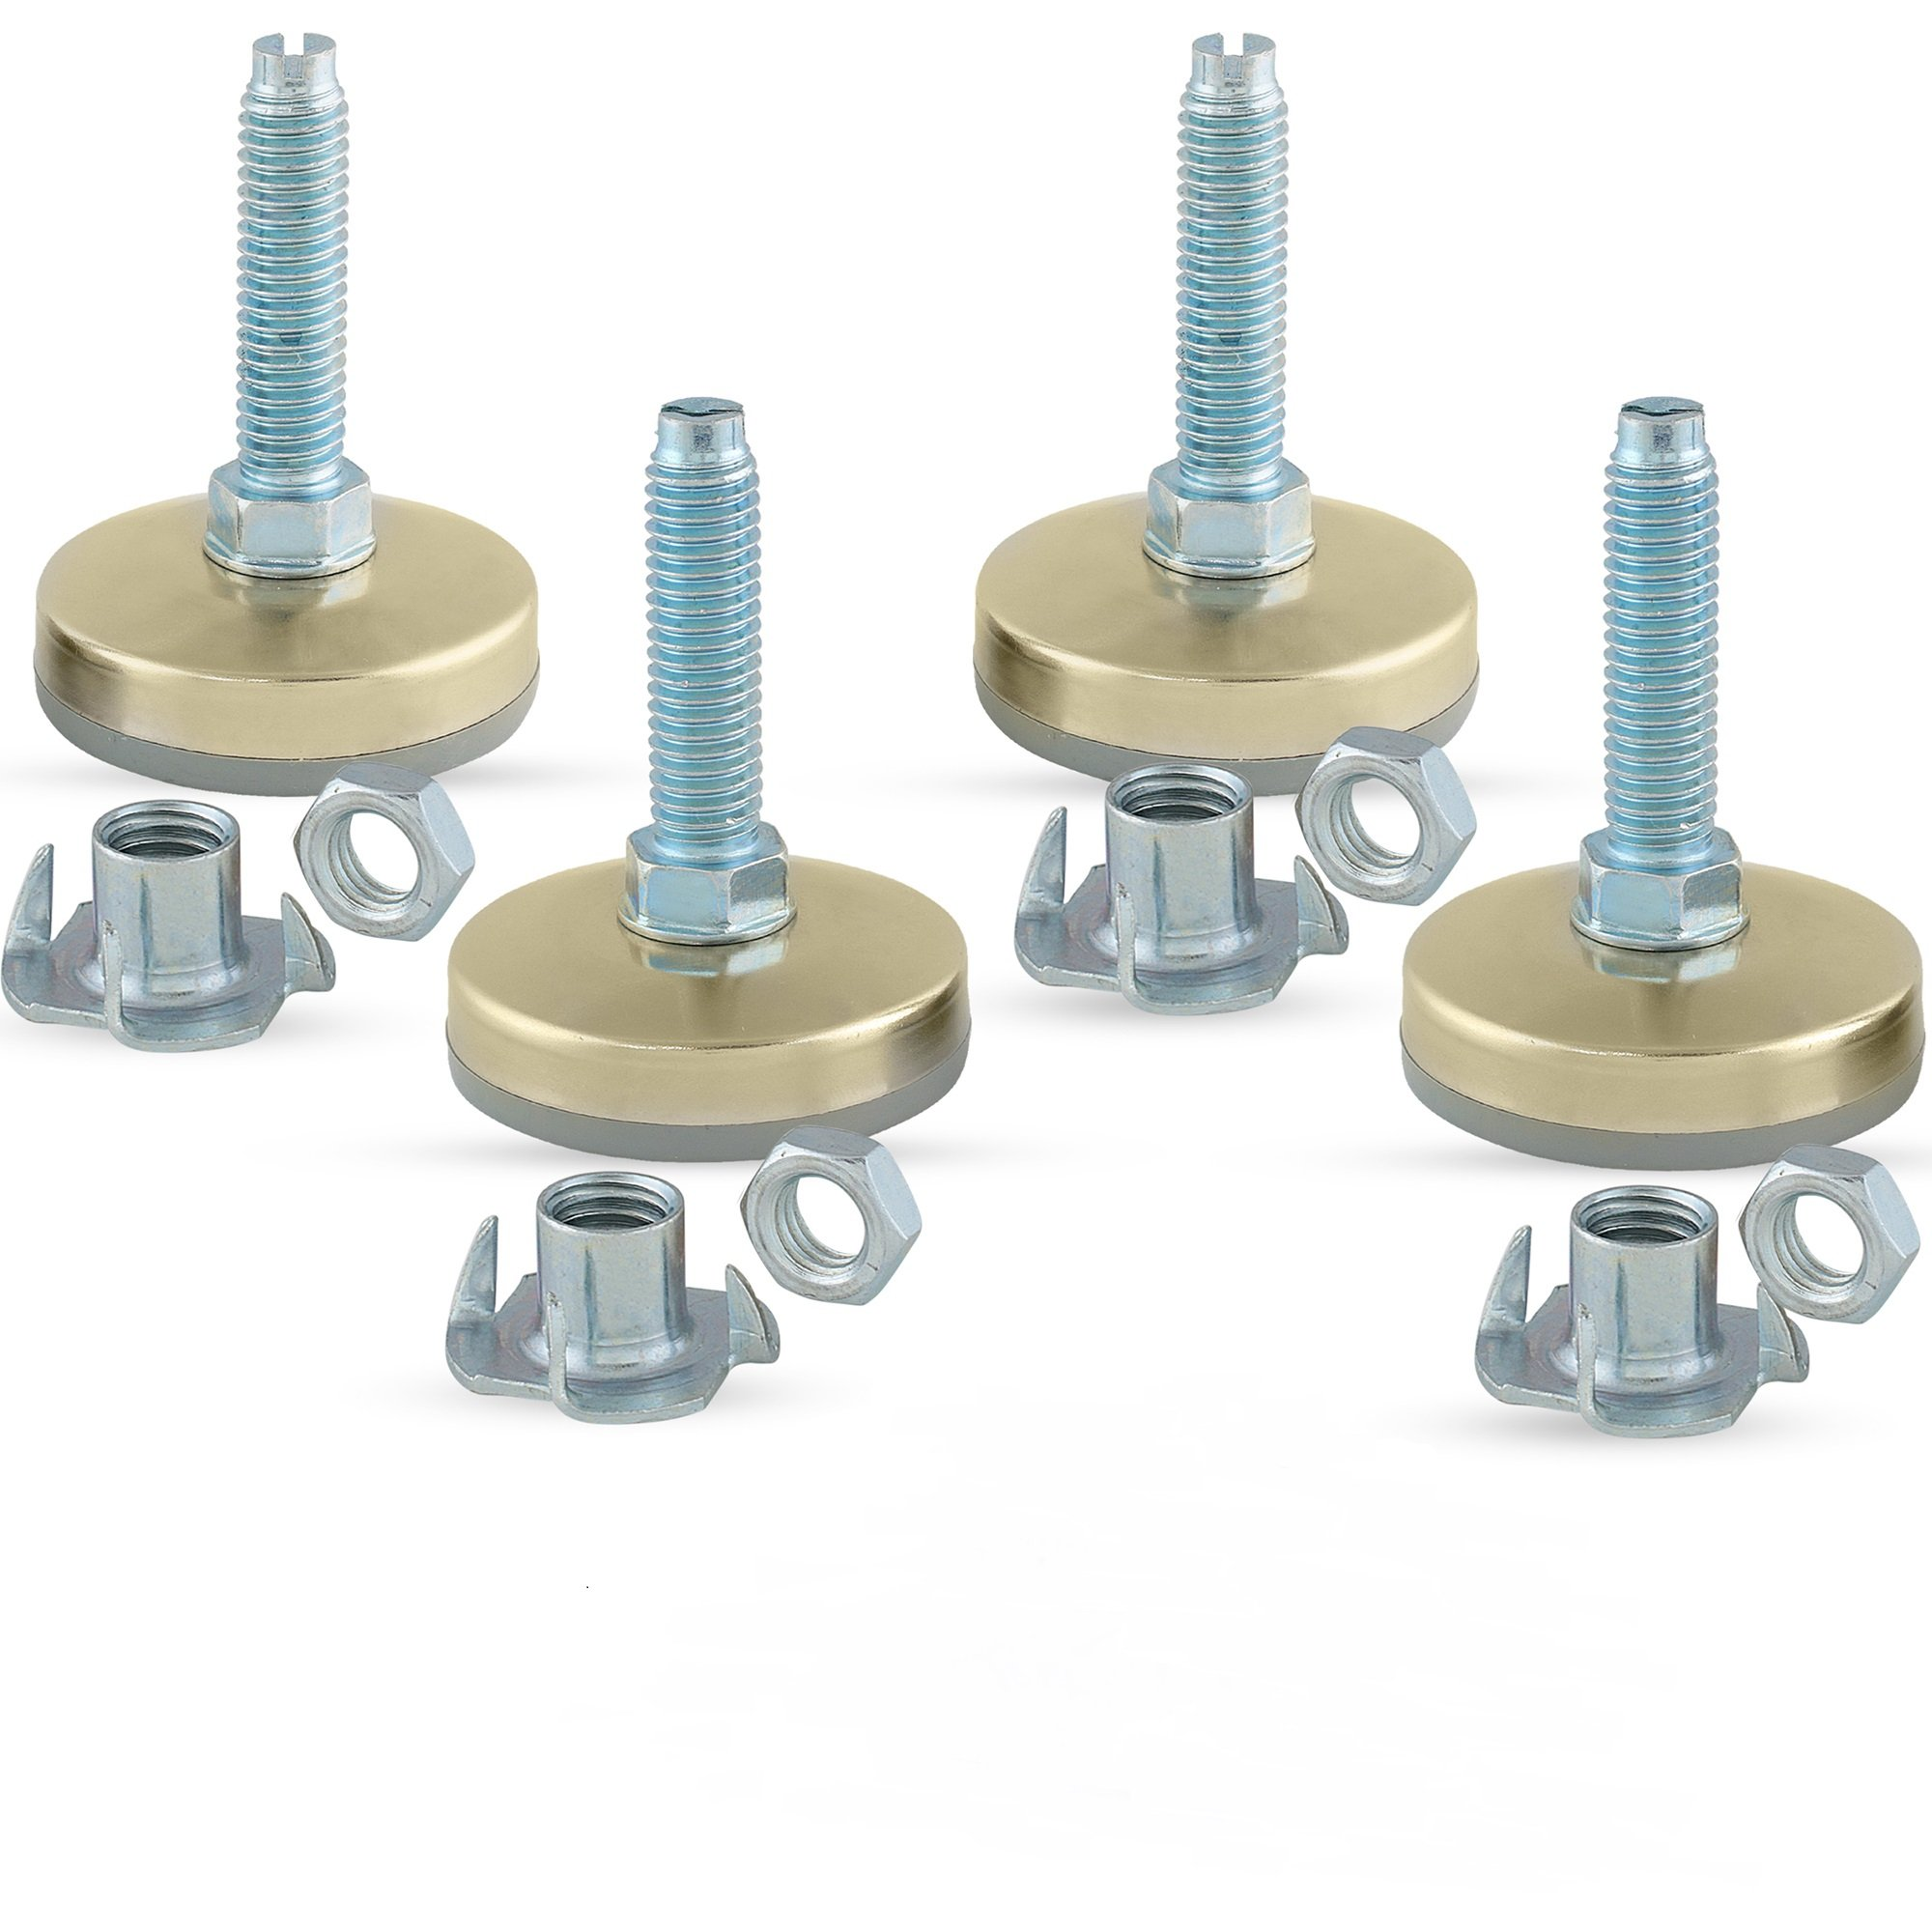 Heavy Duty Furniture Leveler Tee Nut Kit – Set of 4-3/8-16 Non-Skid Leg Levelers for Cabinets or Tables to Adjust Height of The Legs or Feet Jam Nuts to Stabilize Each Foot (Kit with 4 Prong T-Nuts) by Impromech Hardware (Image #3)